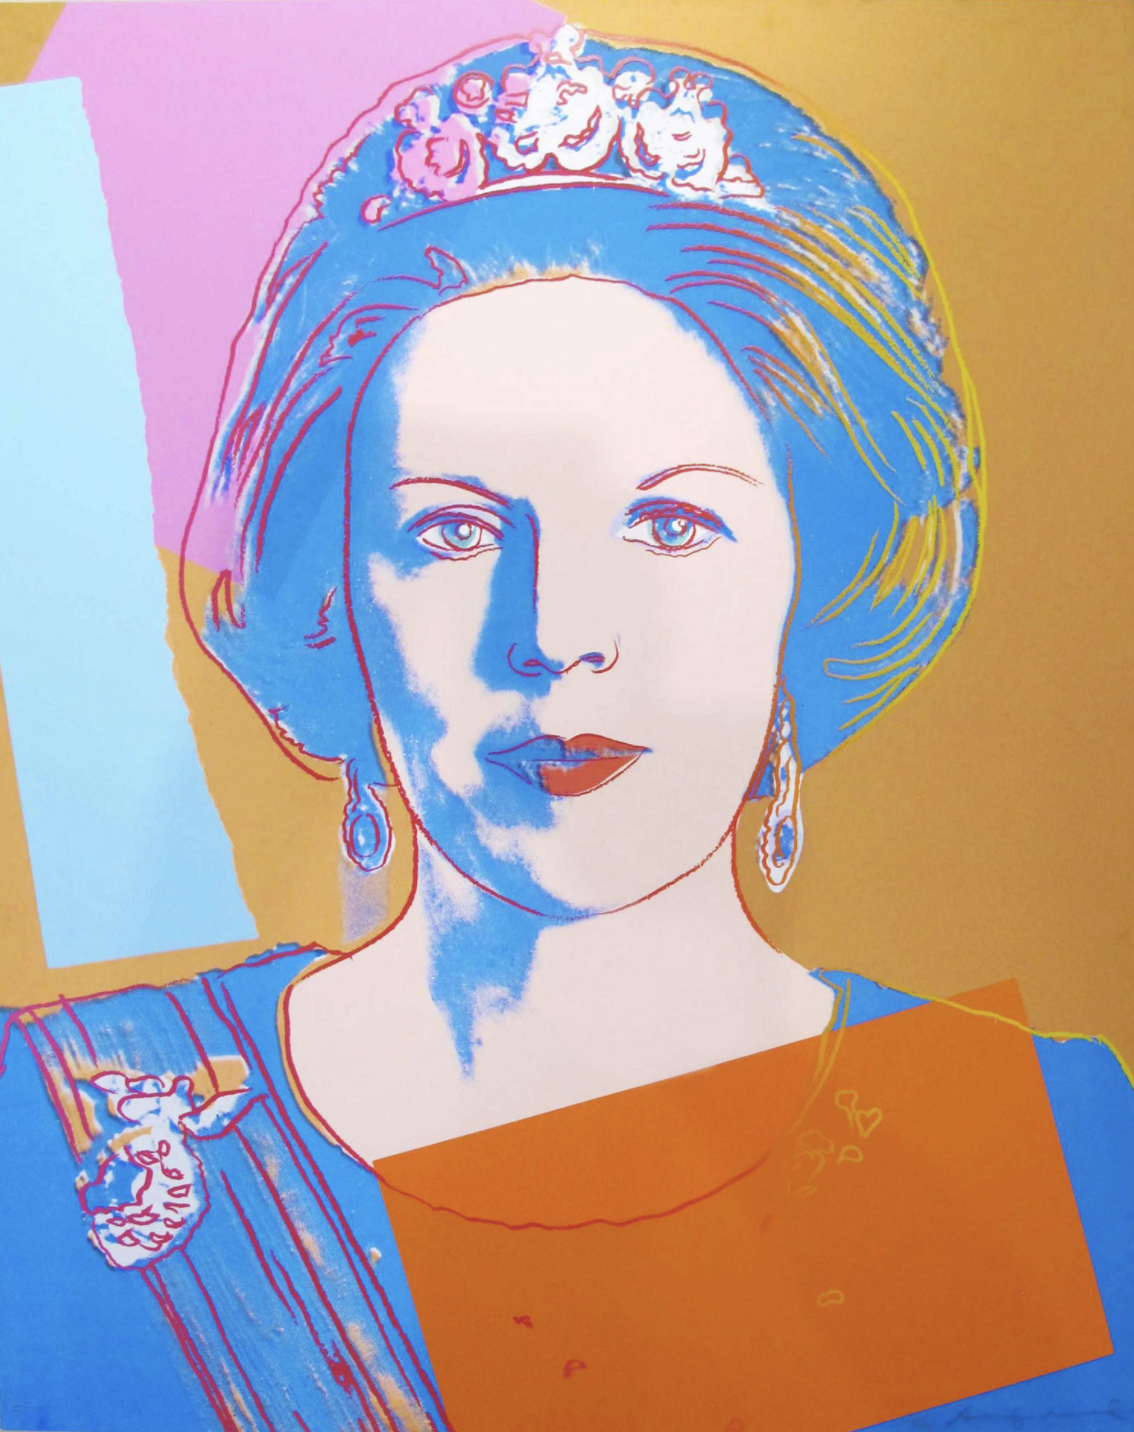 Queen Beatrix Of The Netherlands II.338 by Andy Warhol